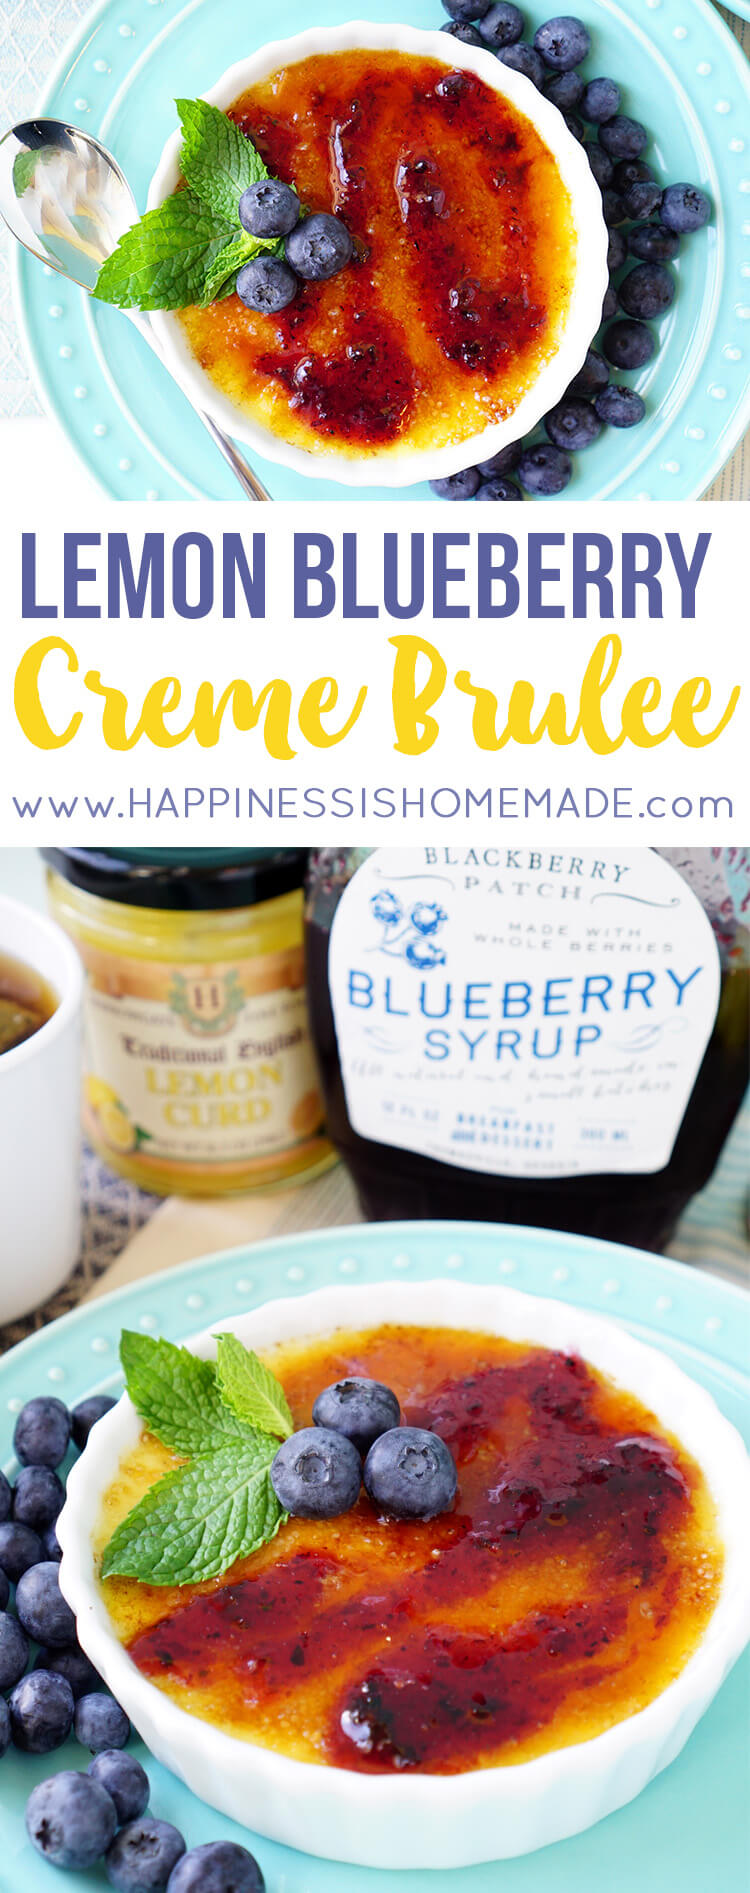 Lemon Blueberry Creme Brulee Recipe